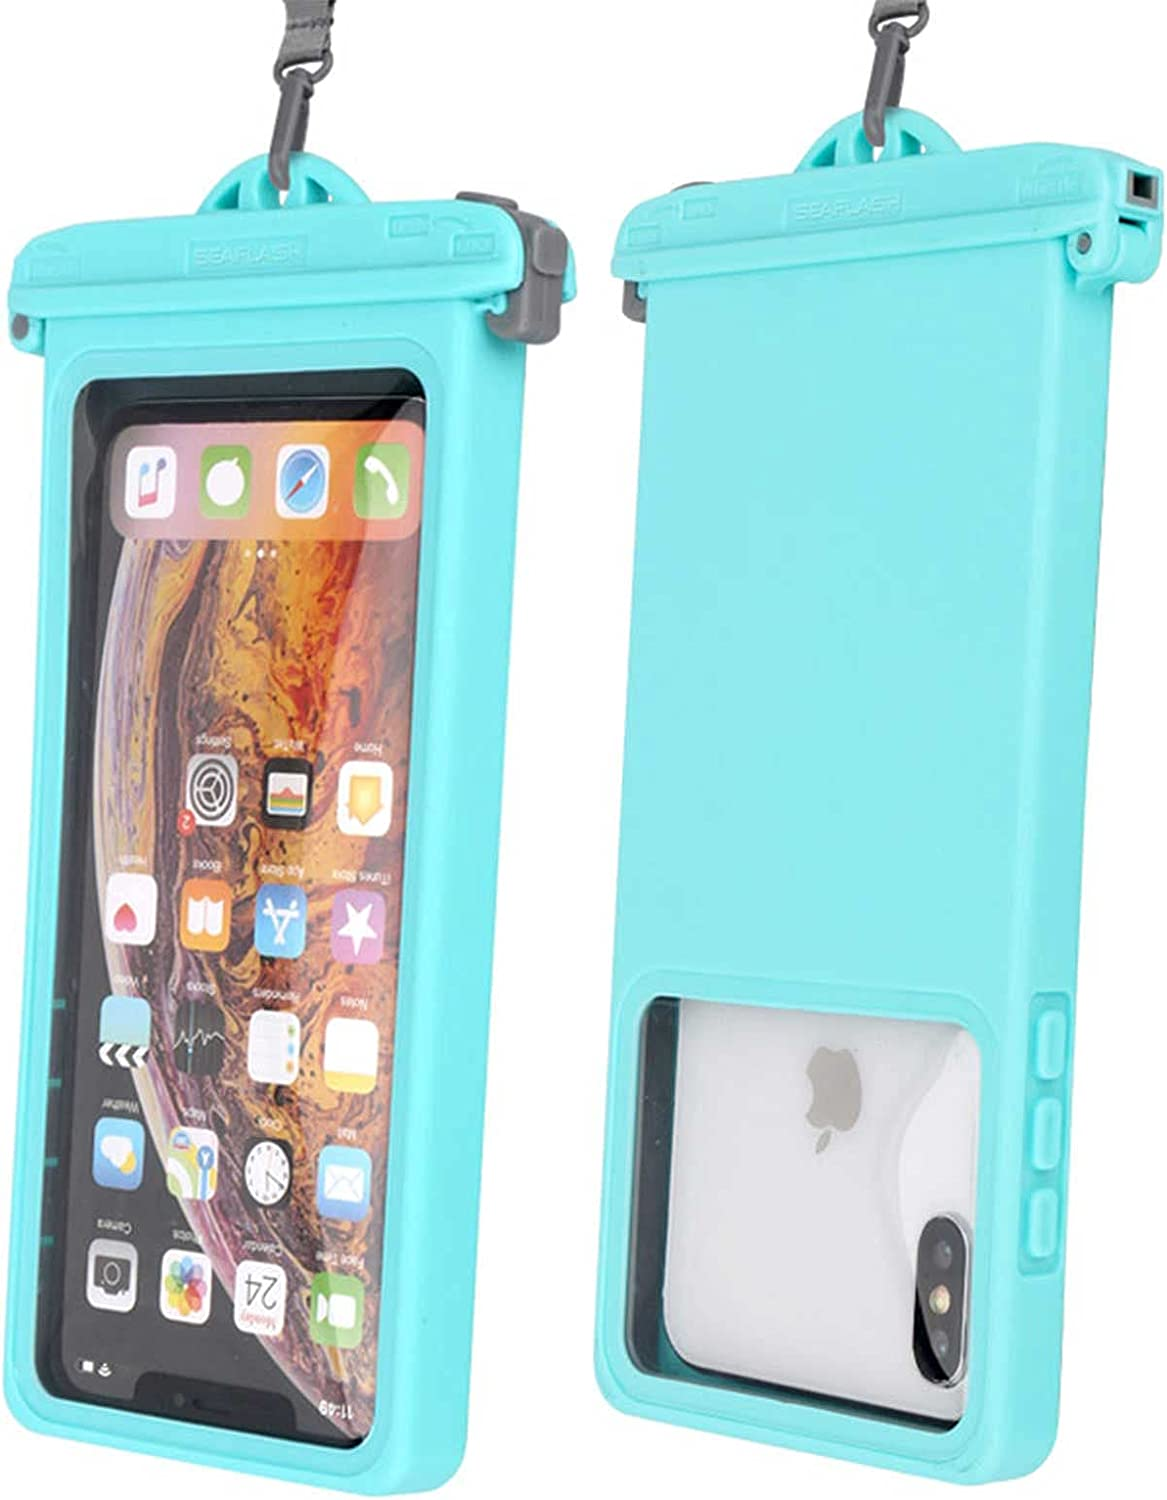 YQK Universal Waterproof Phone Pouch Underwater Case Clear Cellphone Dry Bag with Lanyard Outdoor Beach Swimming Snorkeling Bag for Smartphone up to 6.9 Inch (Cyan)